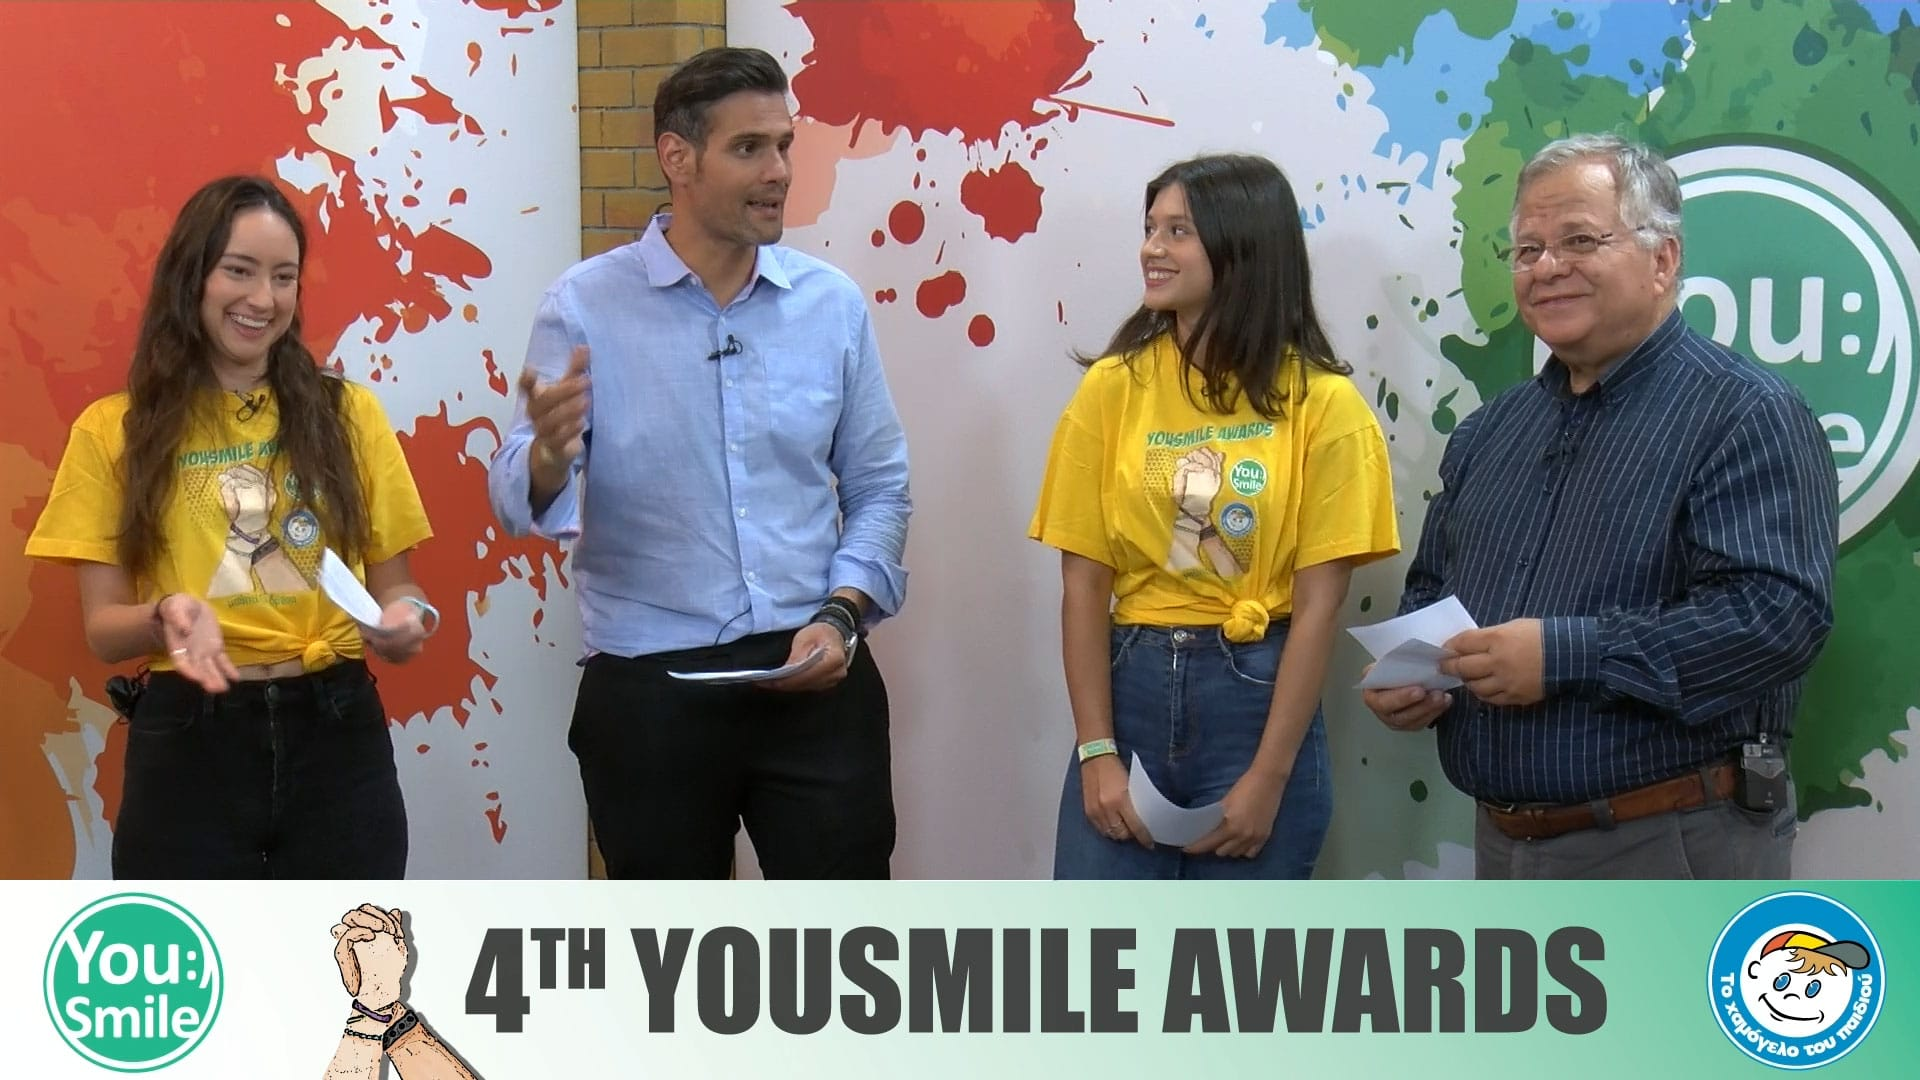 4th-YOUSMILE-AWARDS